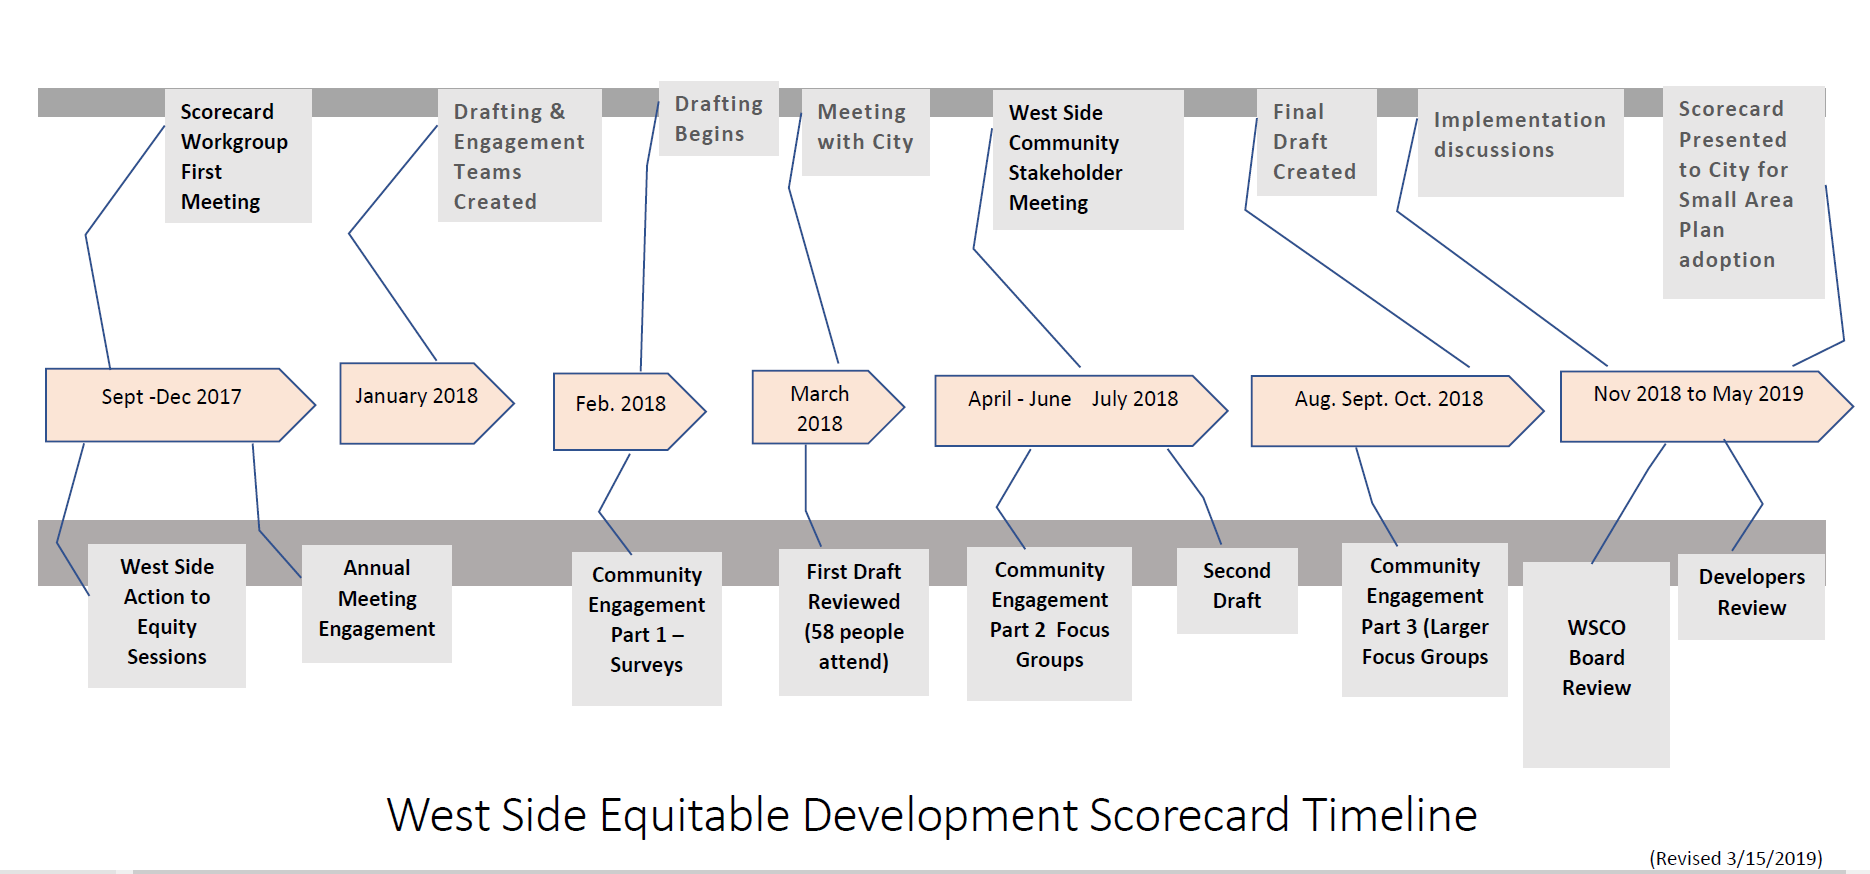 West Side Equitable Development Scorecard Timeline